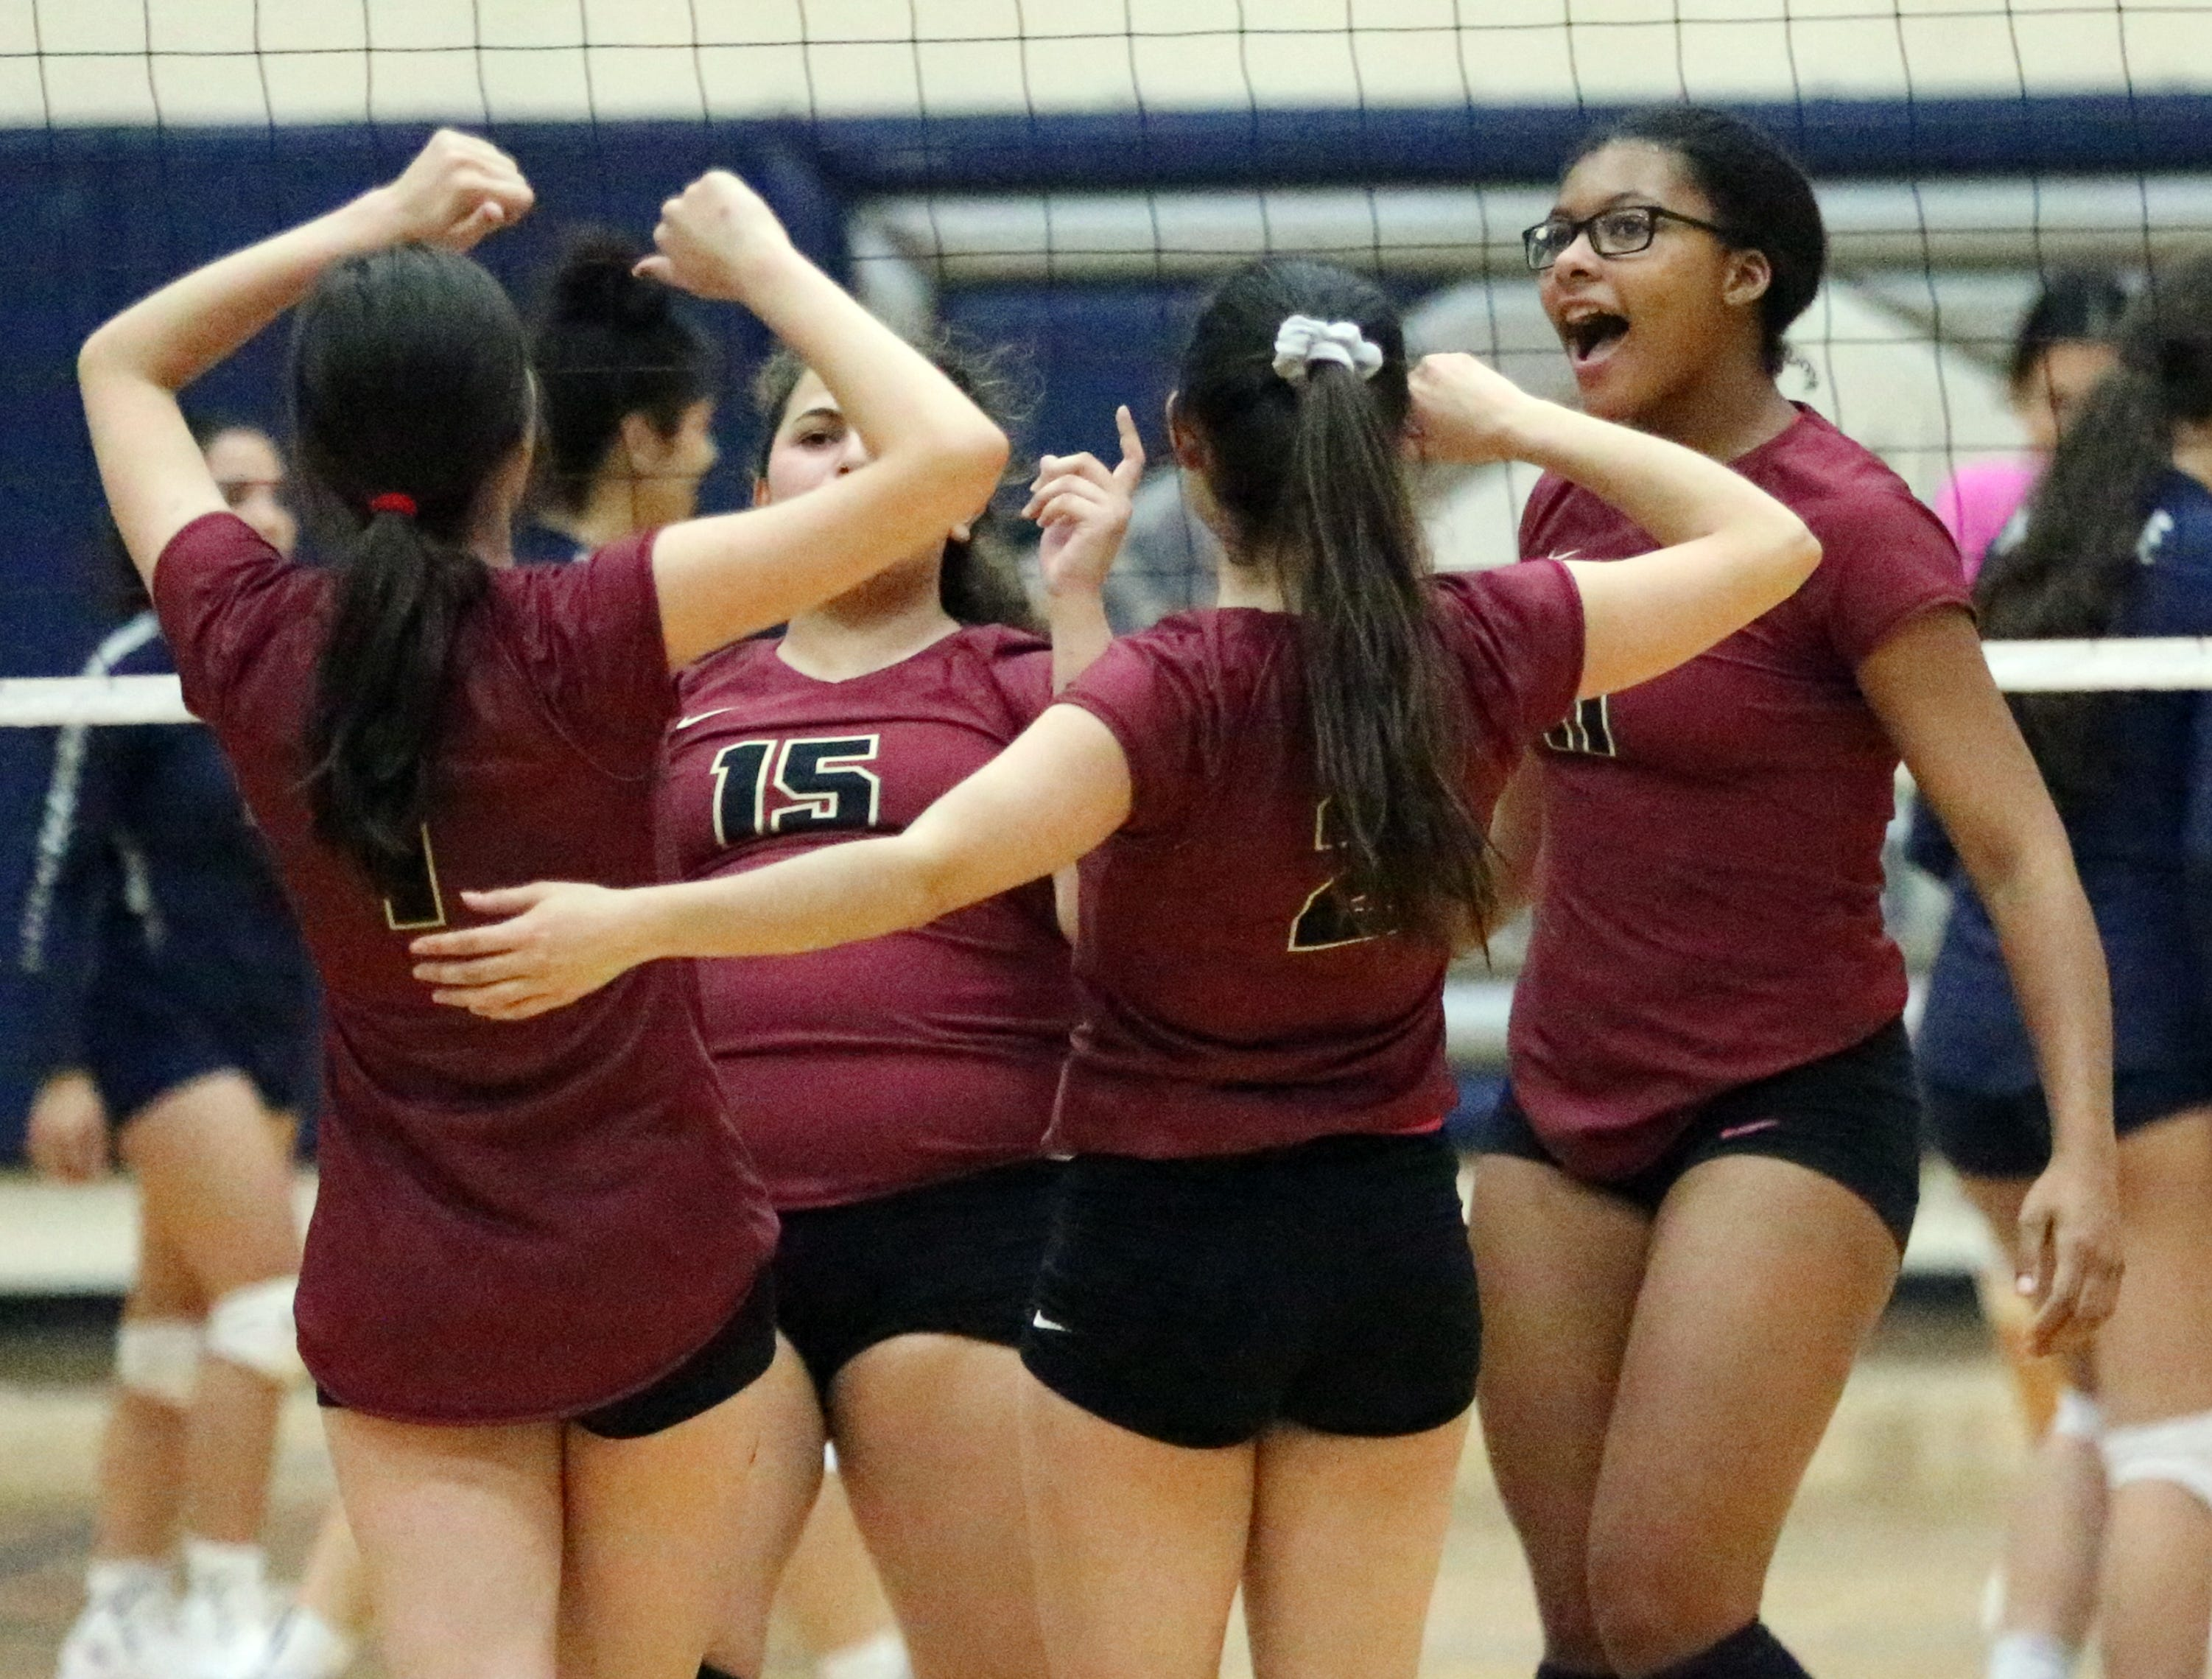 El Dorado players celebrate a point against De Valle on Tuesday night.